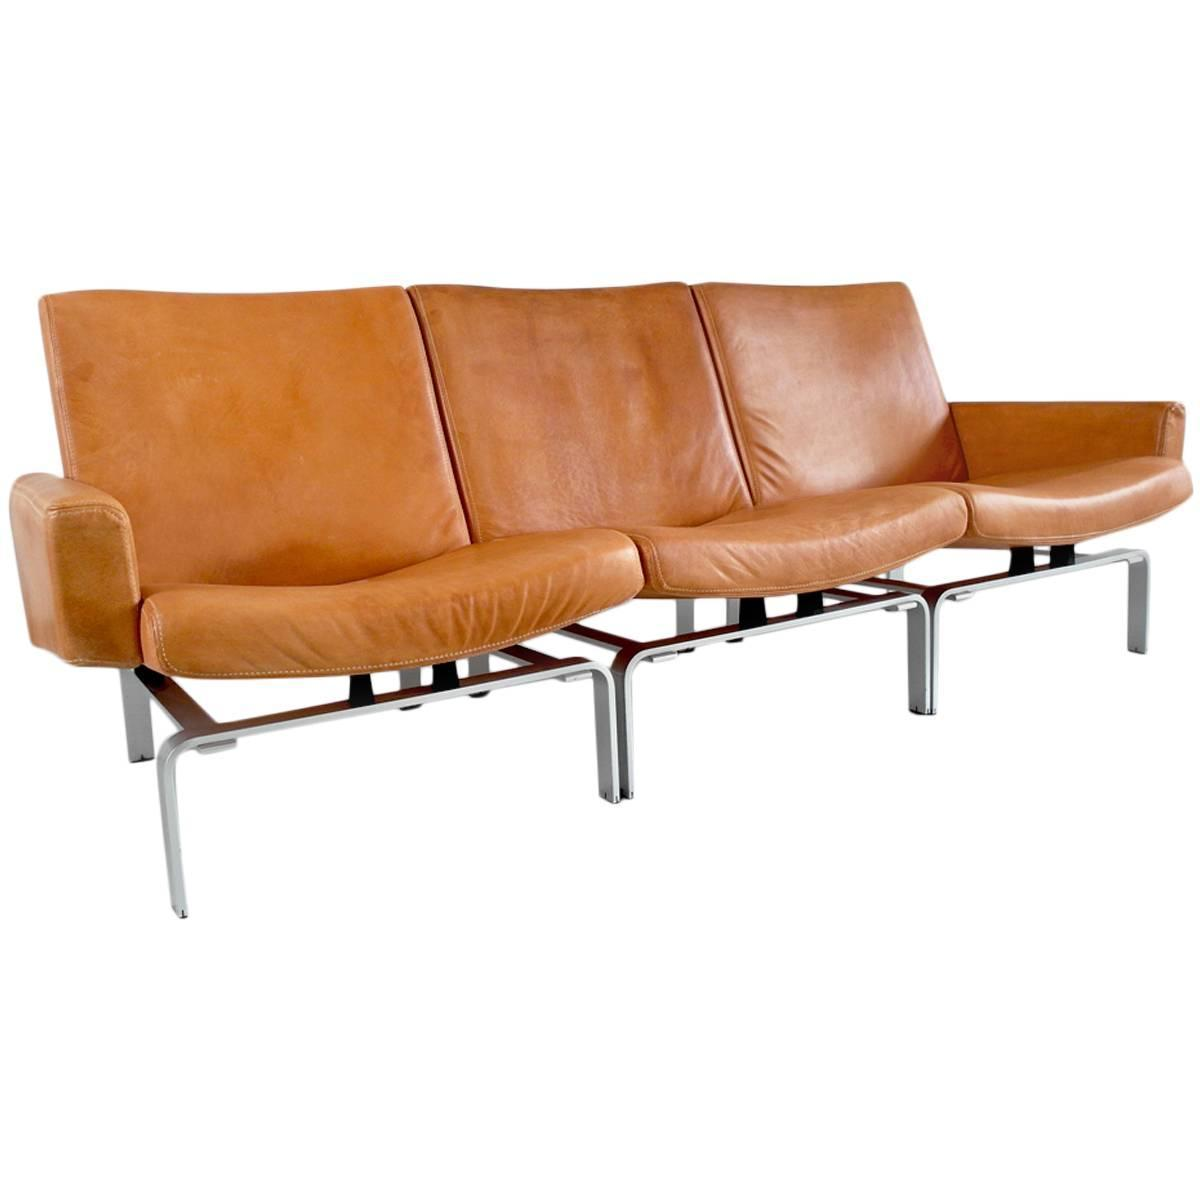 Of four chairs in oak and patinated cognac leather for sale at 1stdibs - Exclusive J Rgen H J Leather And Aluminium Sofa For Niels Vits E At 1stdibs